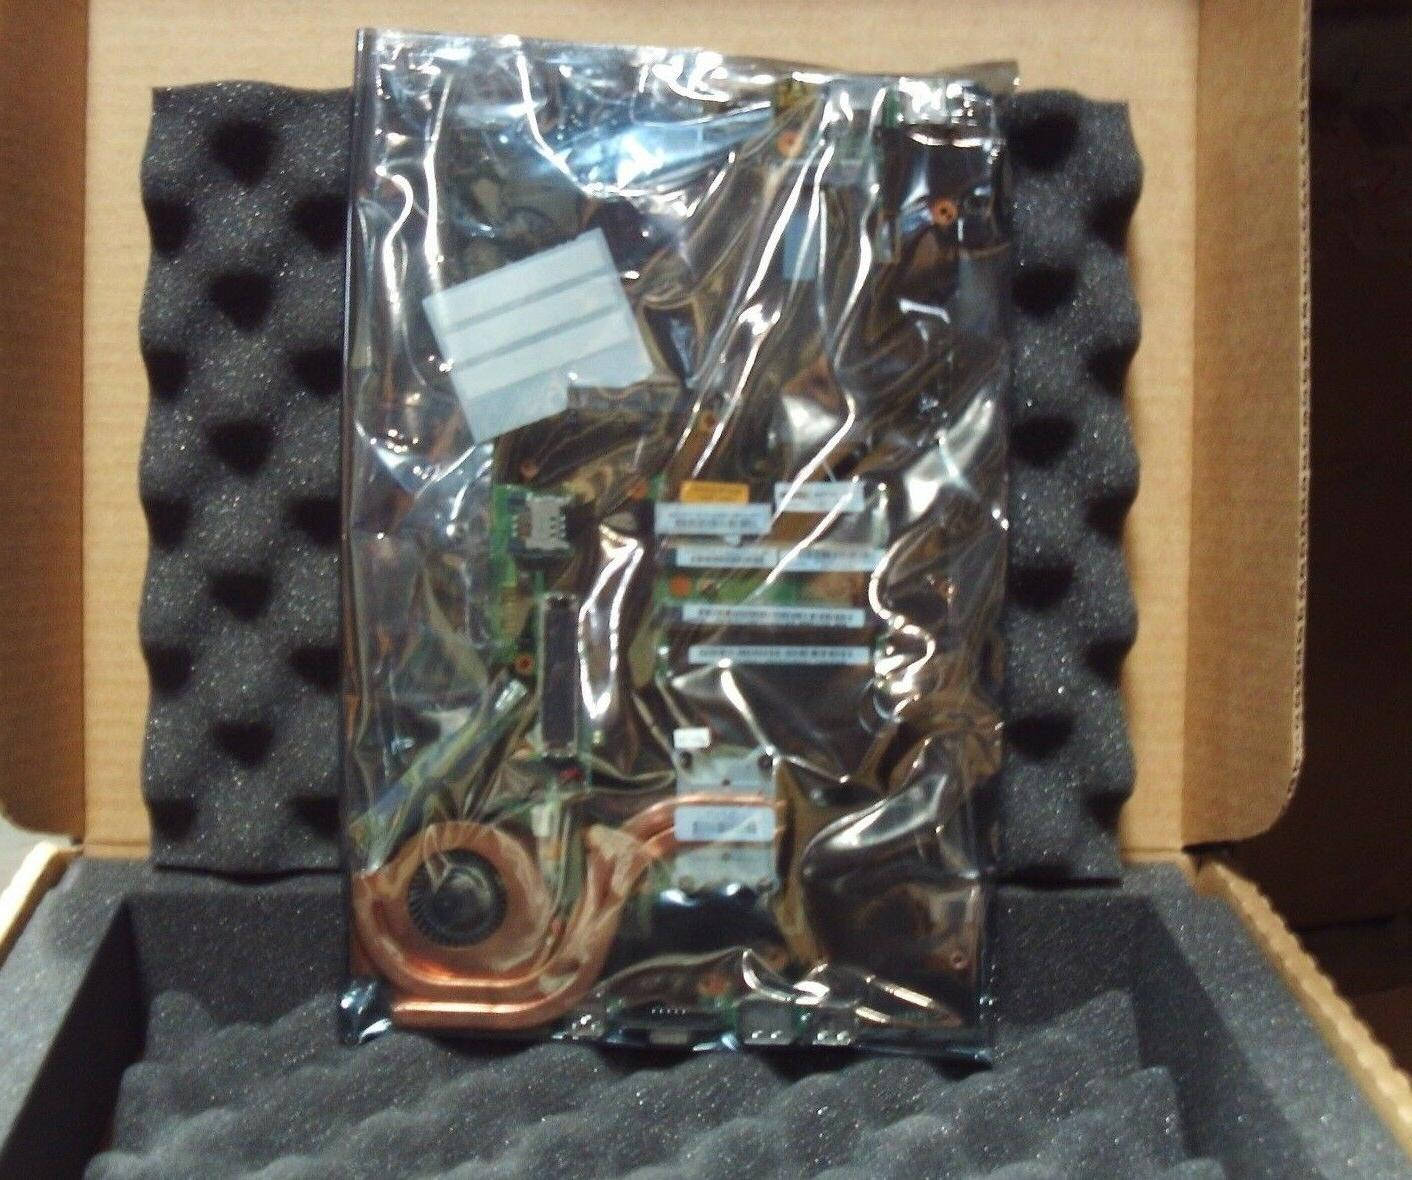 new thinkpad x220 x220i laptop motherboards 04y1826